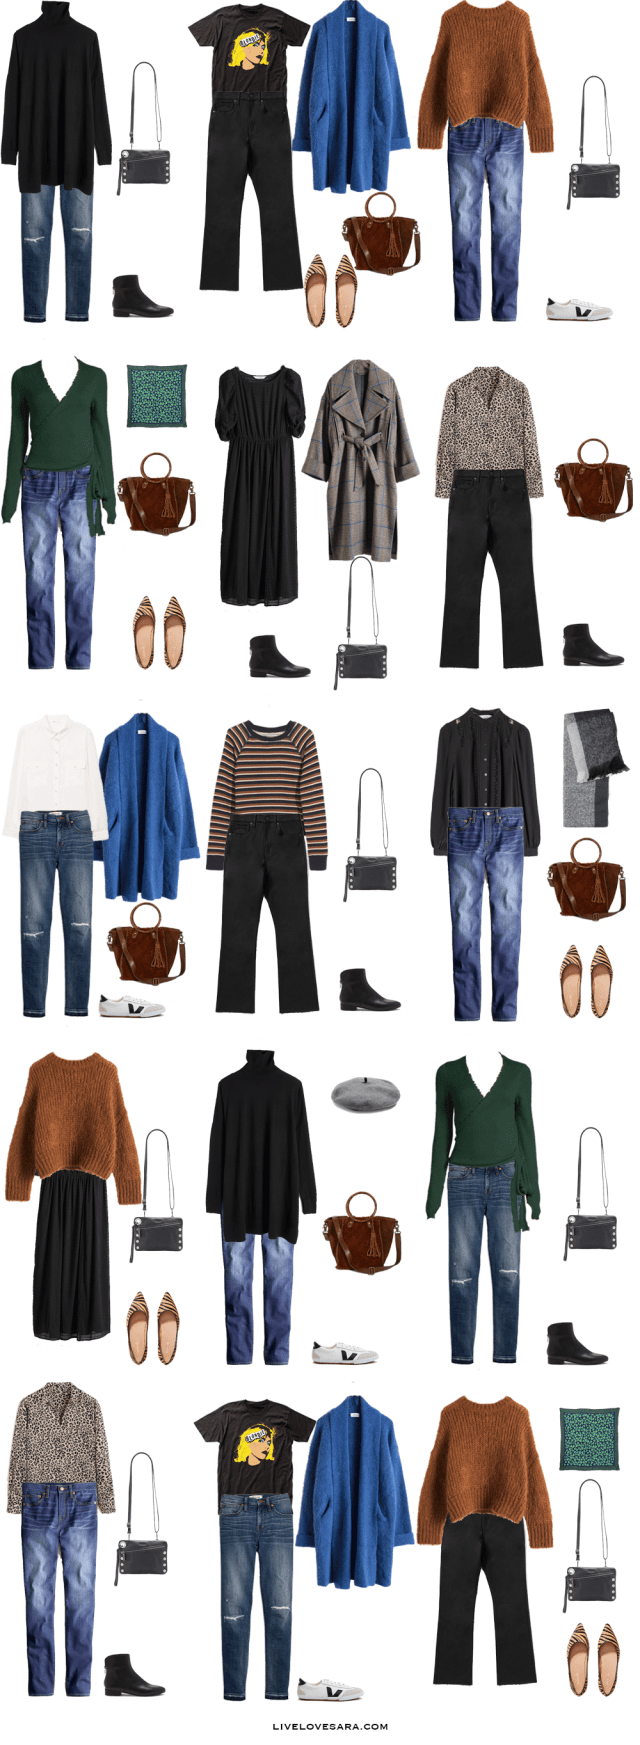 This week I am fast forwarding to spring with a 10 day packing list to Glasgow, Scotland. You can see some outfit ideas here. What to Pack for Glasgow Packing Light List | What to pack for Glasgow | What to Pack for Scotland | What to Pack for Autumn Winter and Spring | Packing Light | Packing List | Travel Light | Travel Wardrobe | Travel Capsule | Capsule | Paris | Pack for vacation | #traveltips #travellight #packinglight #travelwardrobe #travel #packinglist #travelcapsule #capsulewardrobe